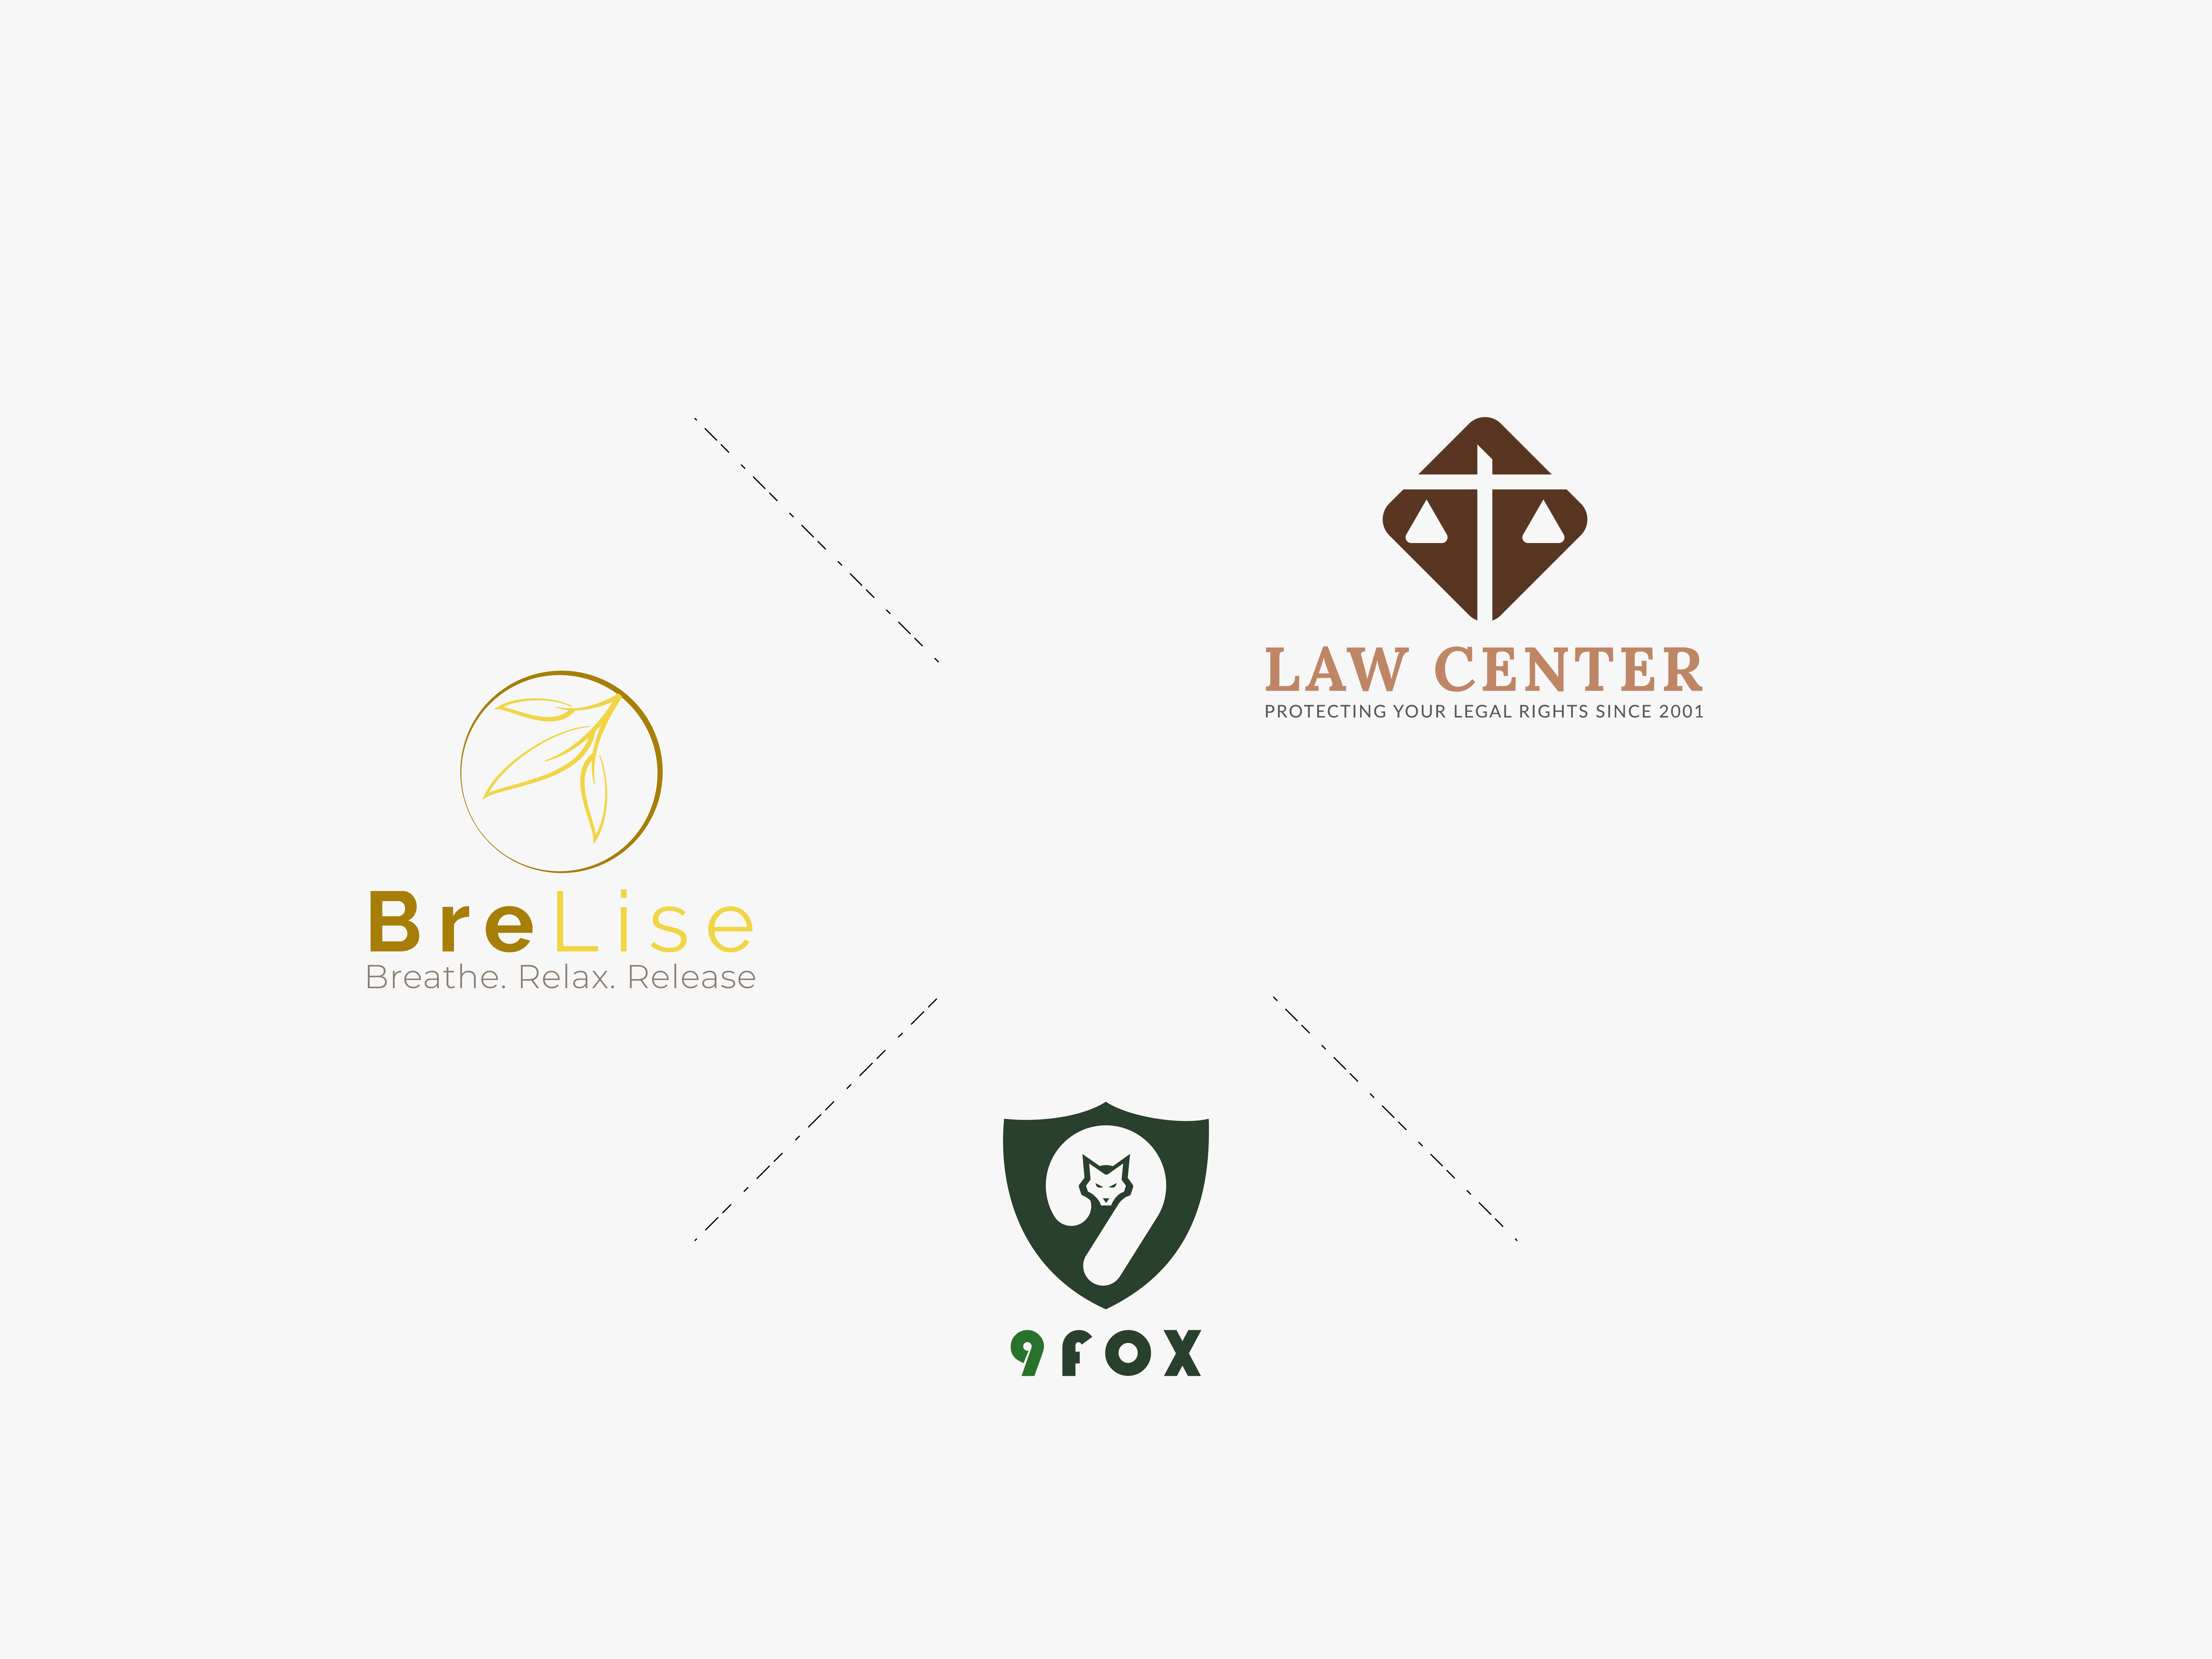 I will do professional minimalist modern logo design for business